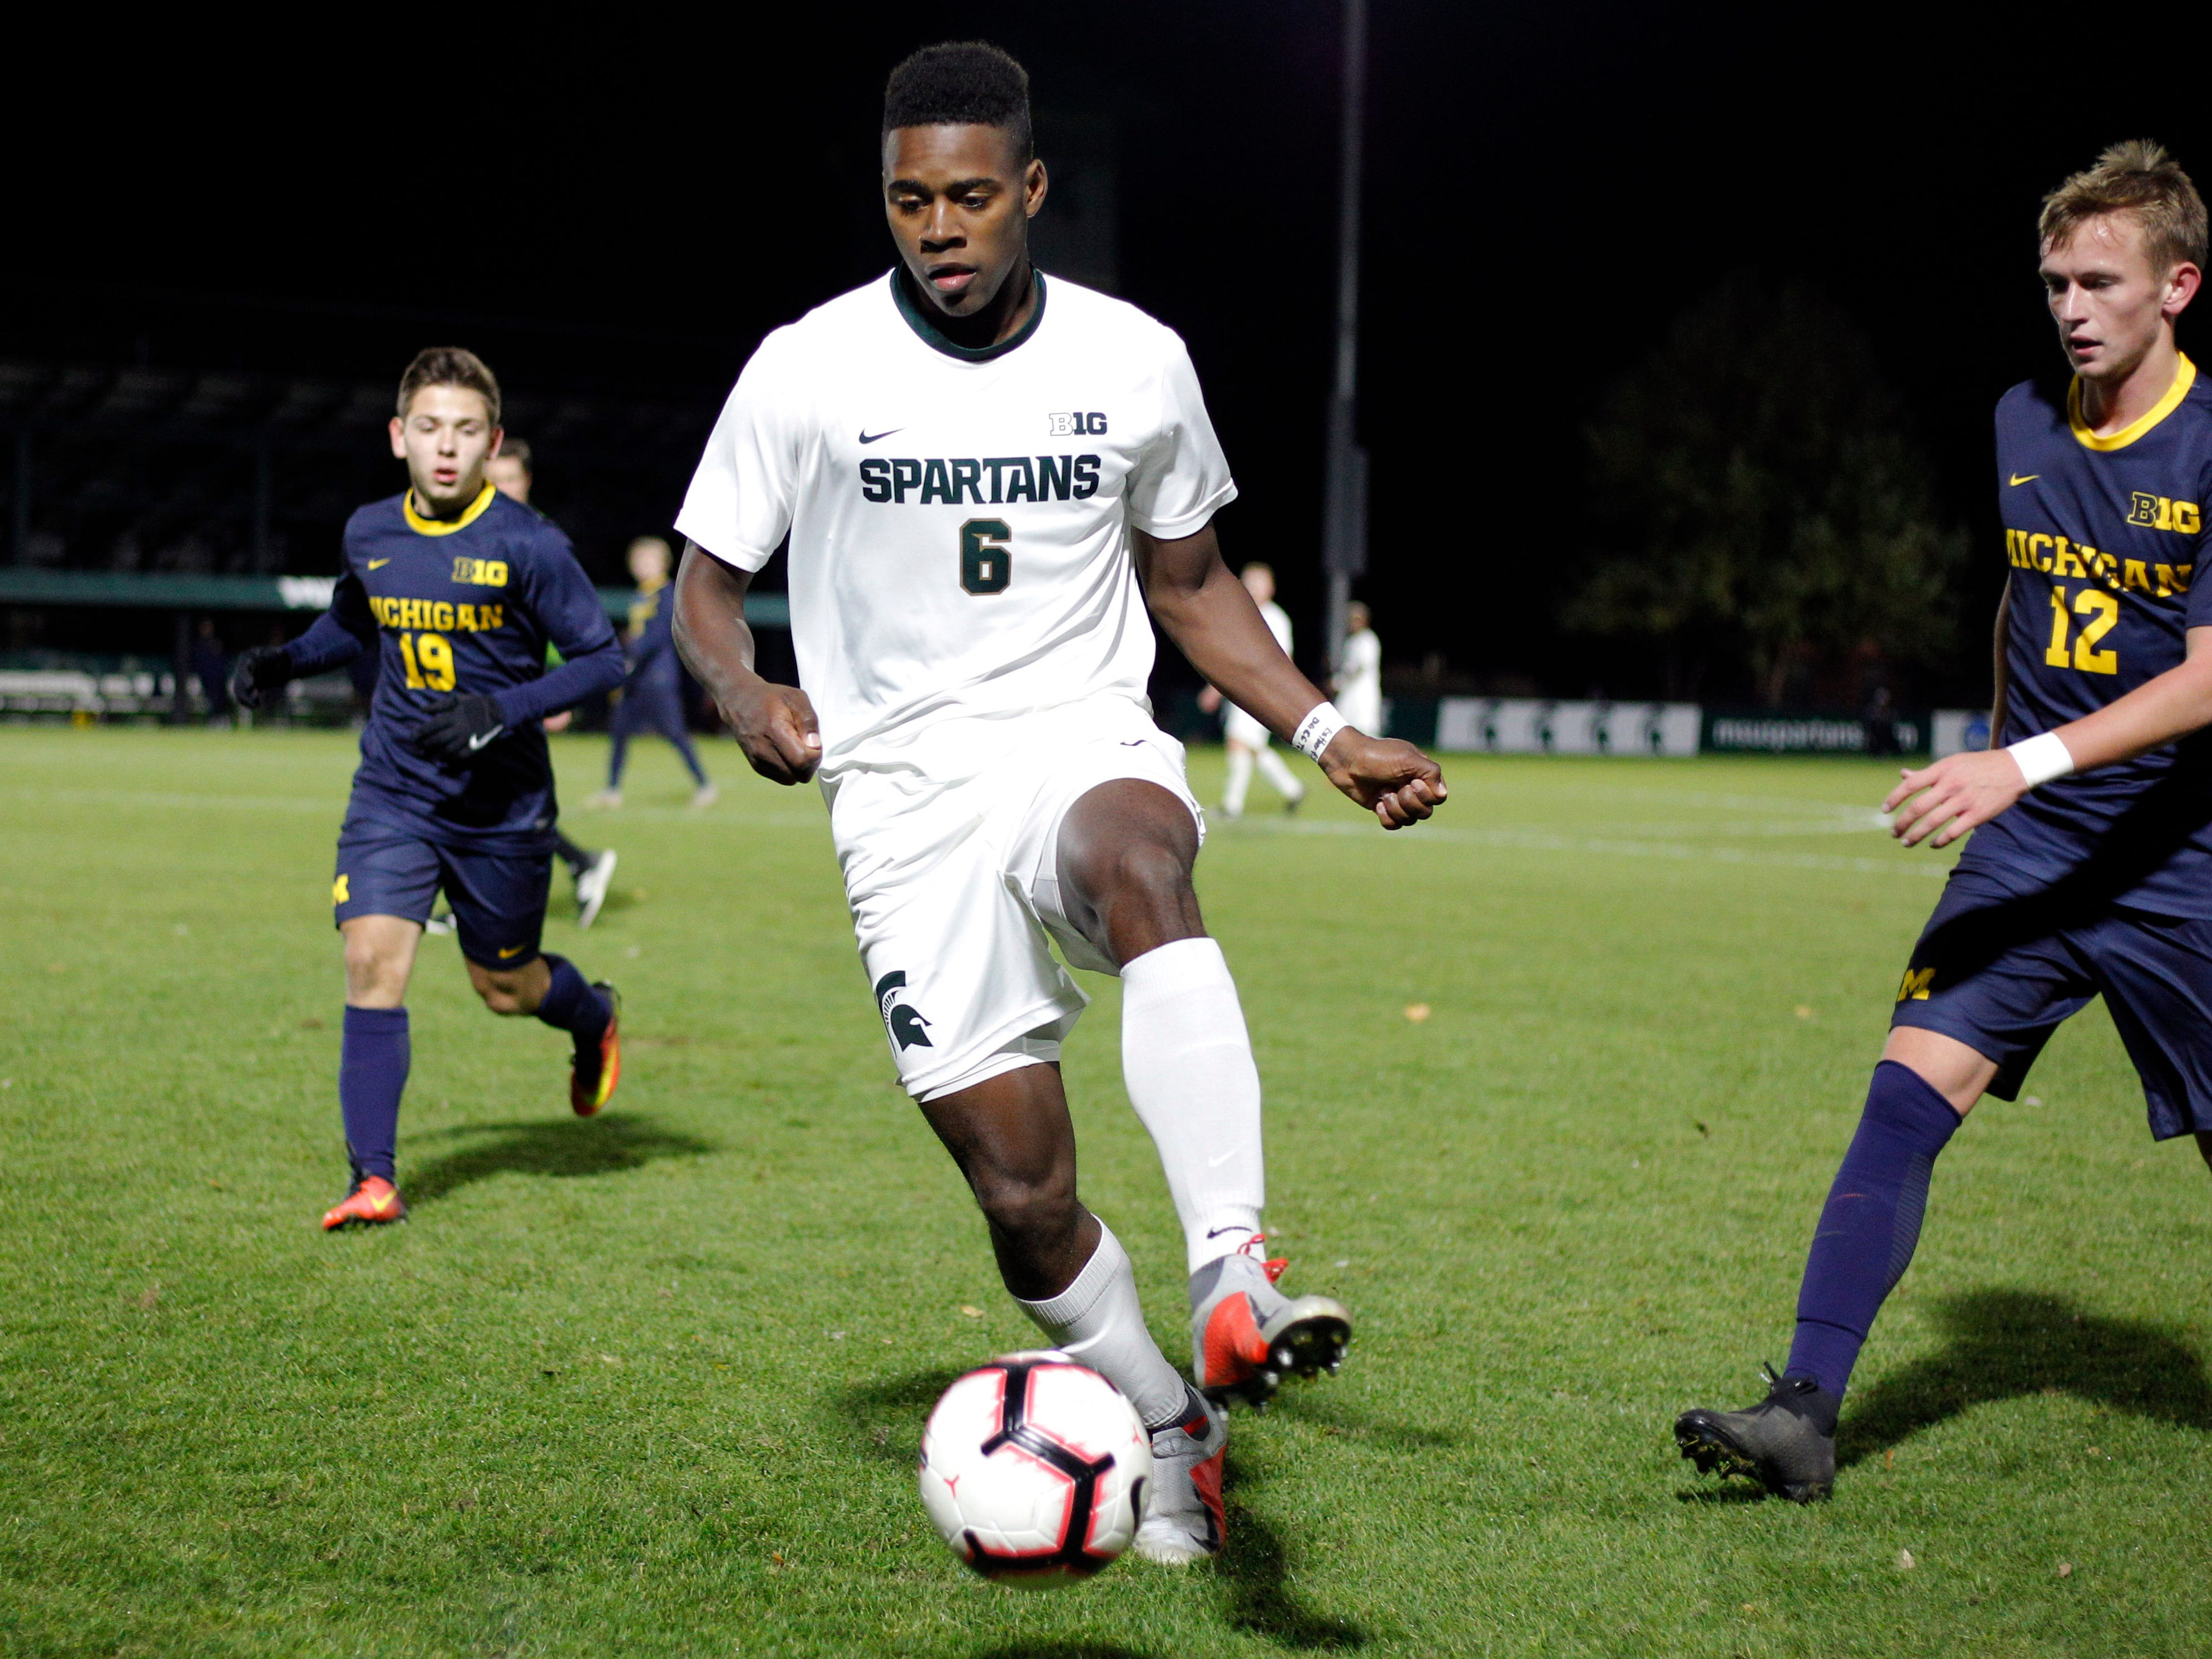 Michigan State's DeJuan Jones (6) controls the ball against Michigan's Kevin Buca, left, and Austin Swiech, right,, Tuesday, Oct. 23, 2018, in East Lansing, Mich. The teams played to a 1-1 draw.